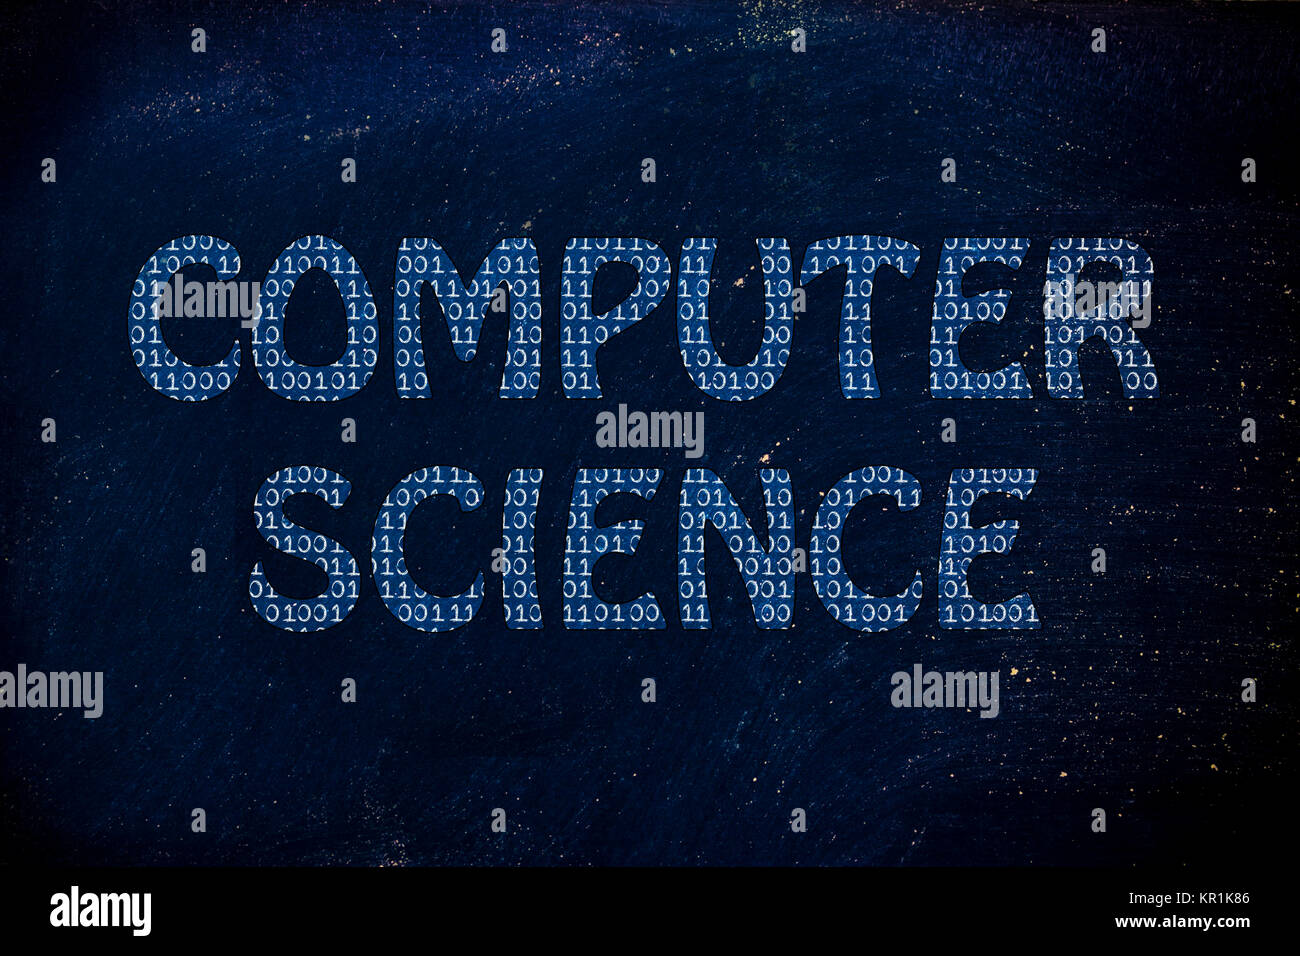 computer science writing with binary code pattern - Stock Image